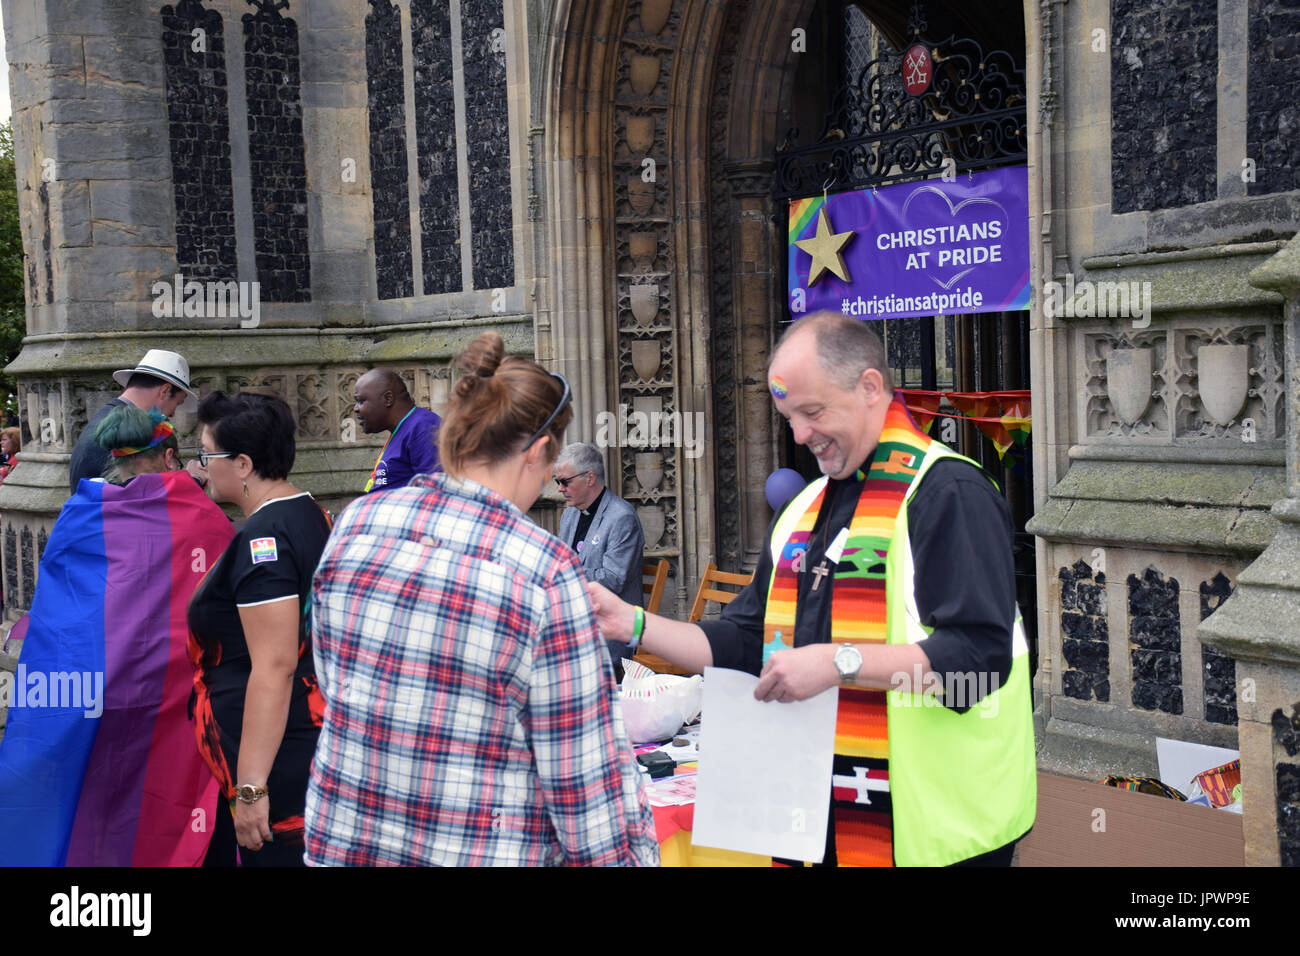 Christians at Pride 2017, Norwich UK, 29 July 2017 - Stock Image